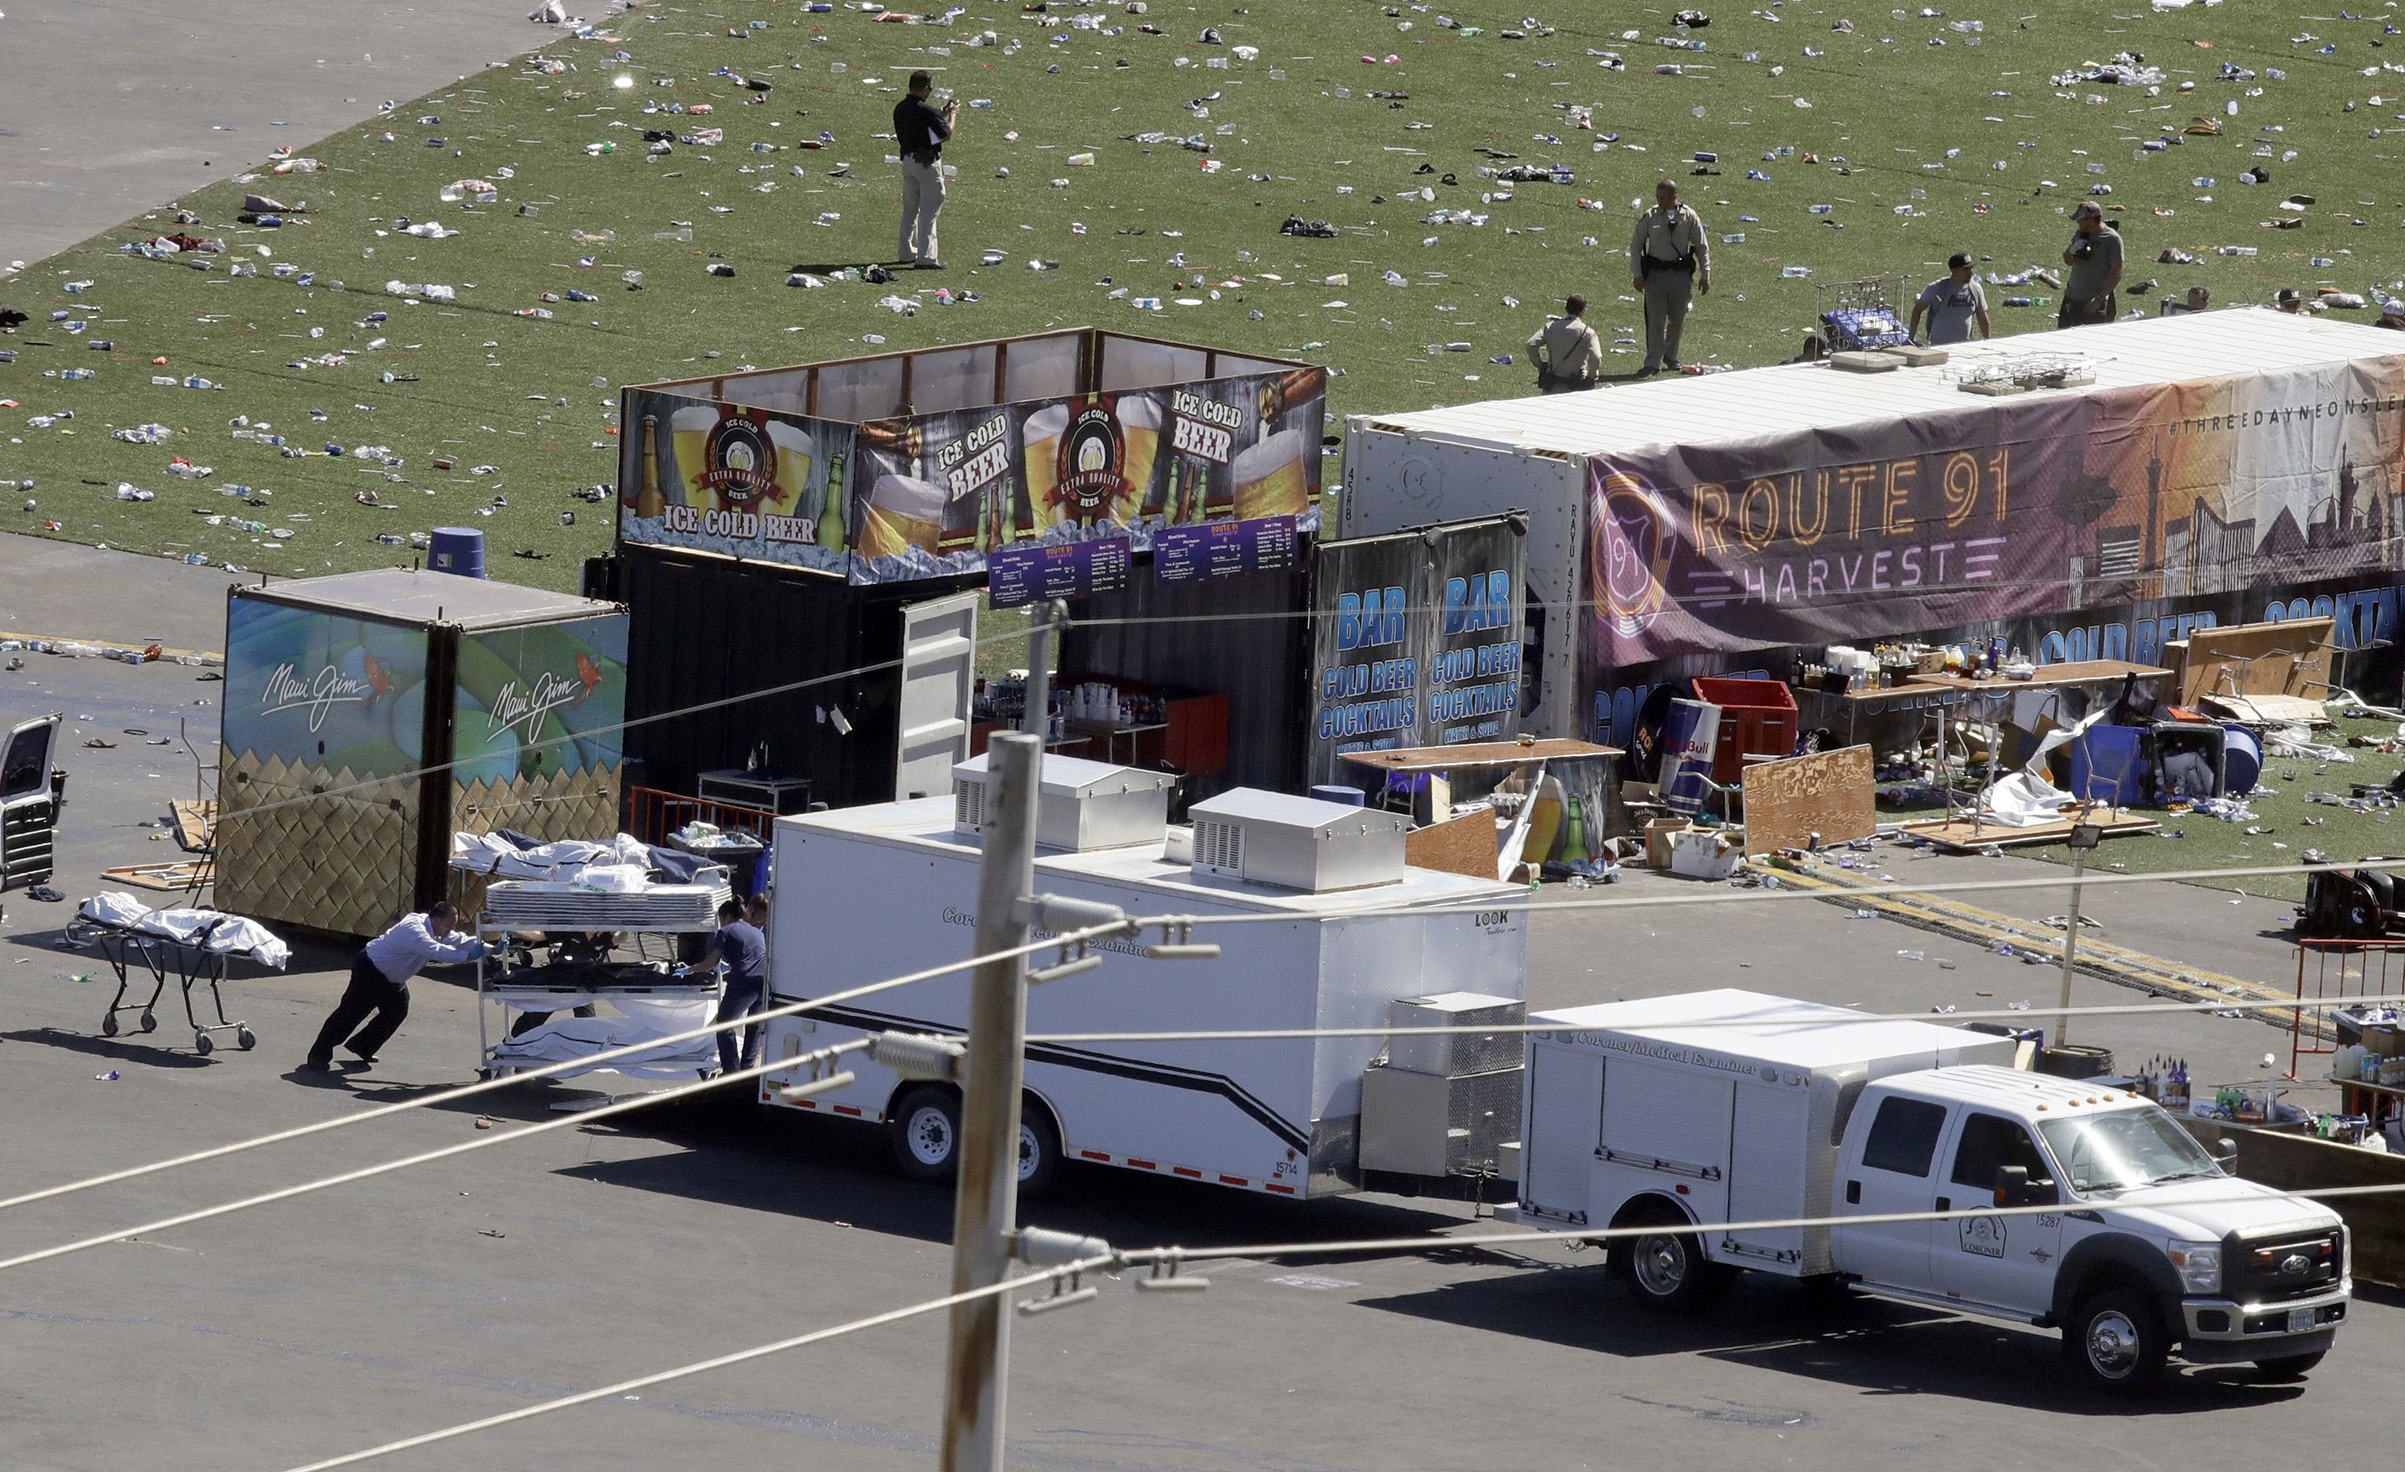 Investigators load a truck with bodies from the scene of a mass shooting at a music festival near the Mandalay Bay resort and casino on the Las Vegas Strip, in Las Vegas on Oct. 2 2017.